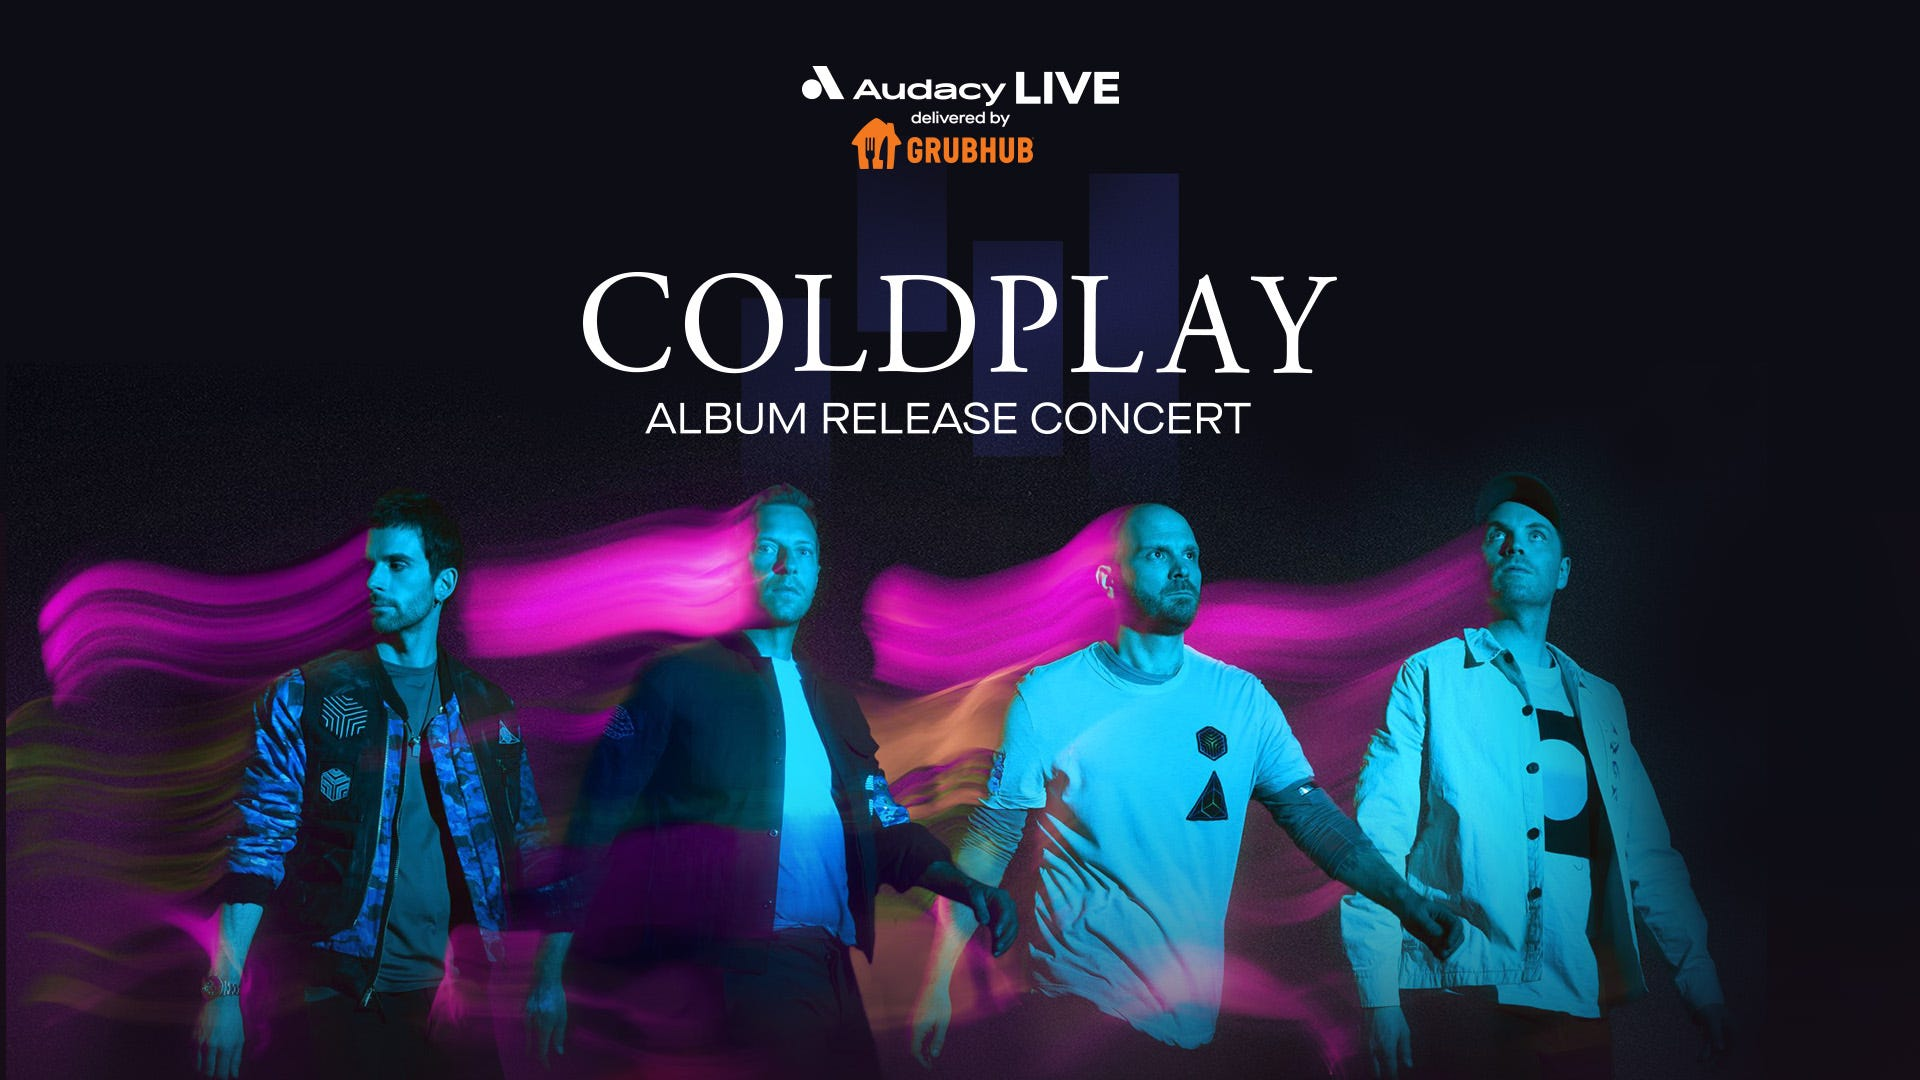 How to watch Audacy Live: Coldplay Album Release Concert delivered by GrubHub